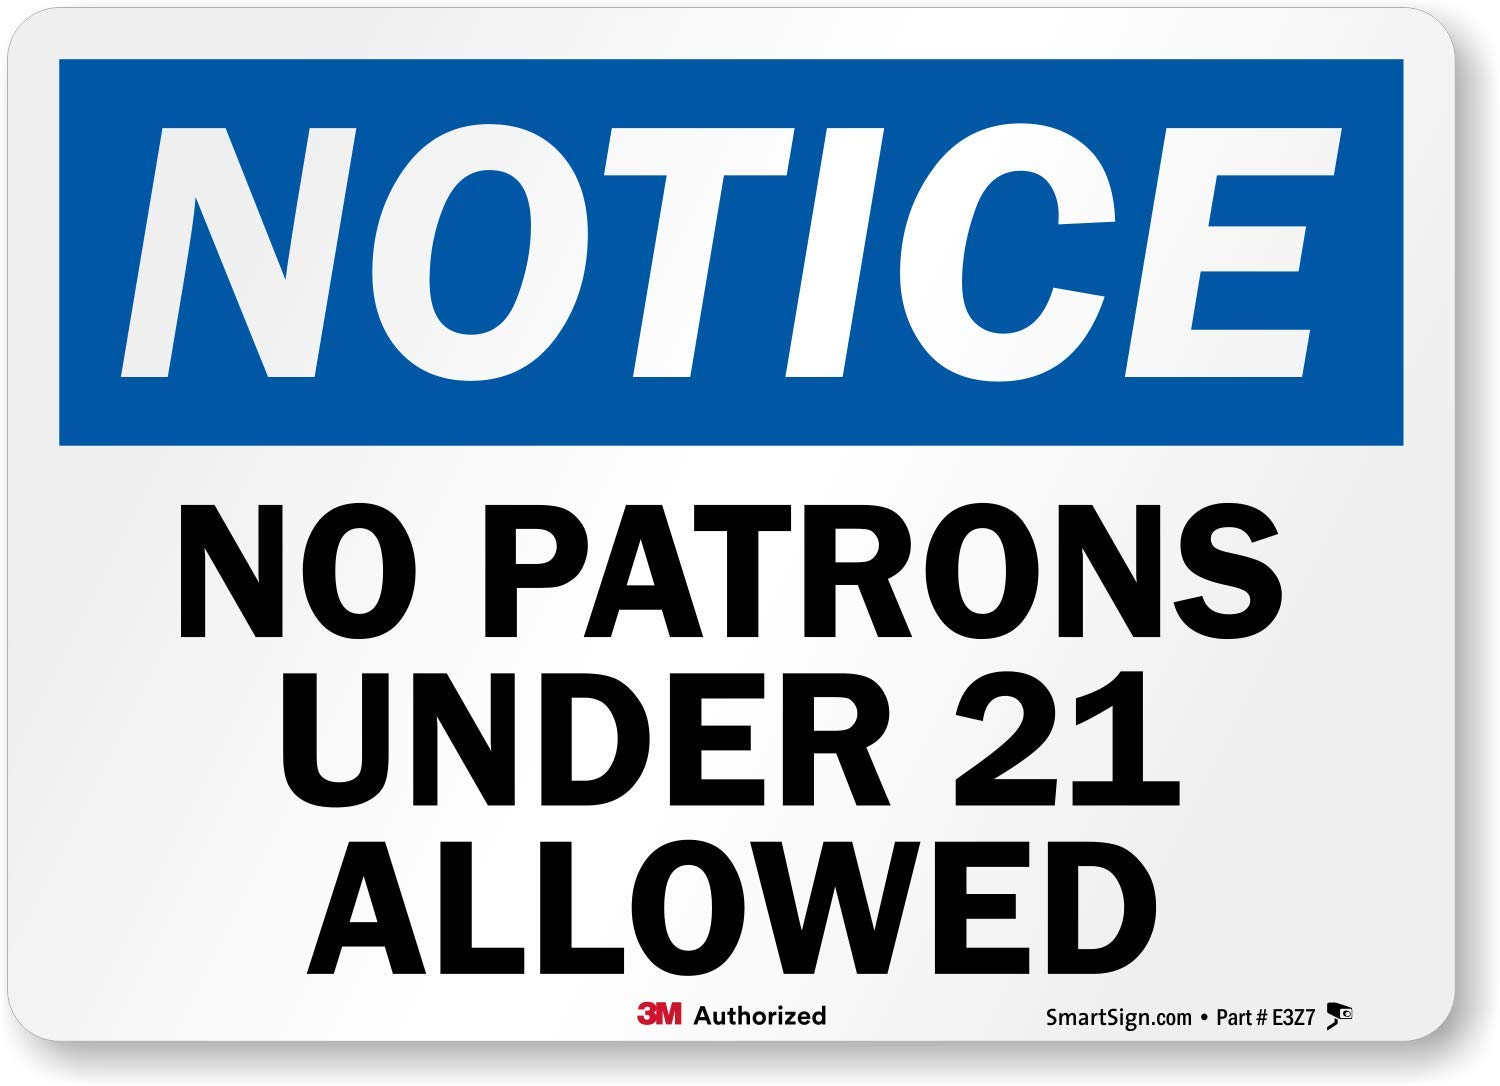 SmartSign by Lyle U5-1393-RD_7X5 NOTICE NO PATRONS UNDER 21 ALLOWED Reflective Self-Adhesive Decal, 7' x 5'